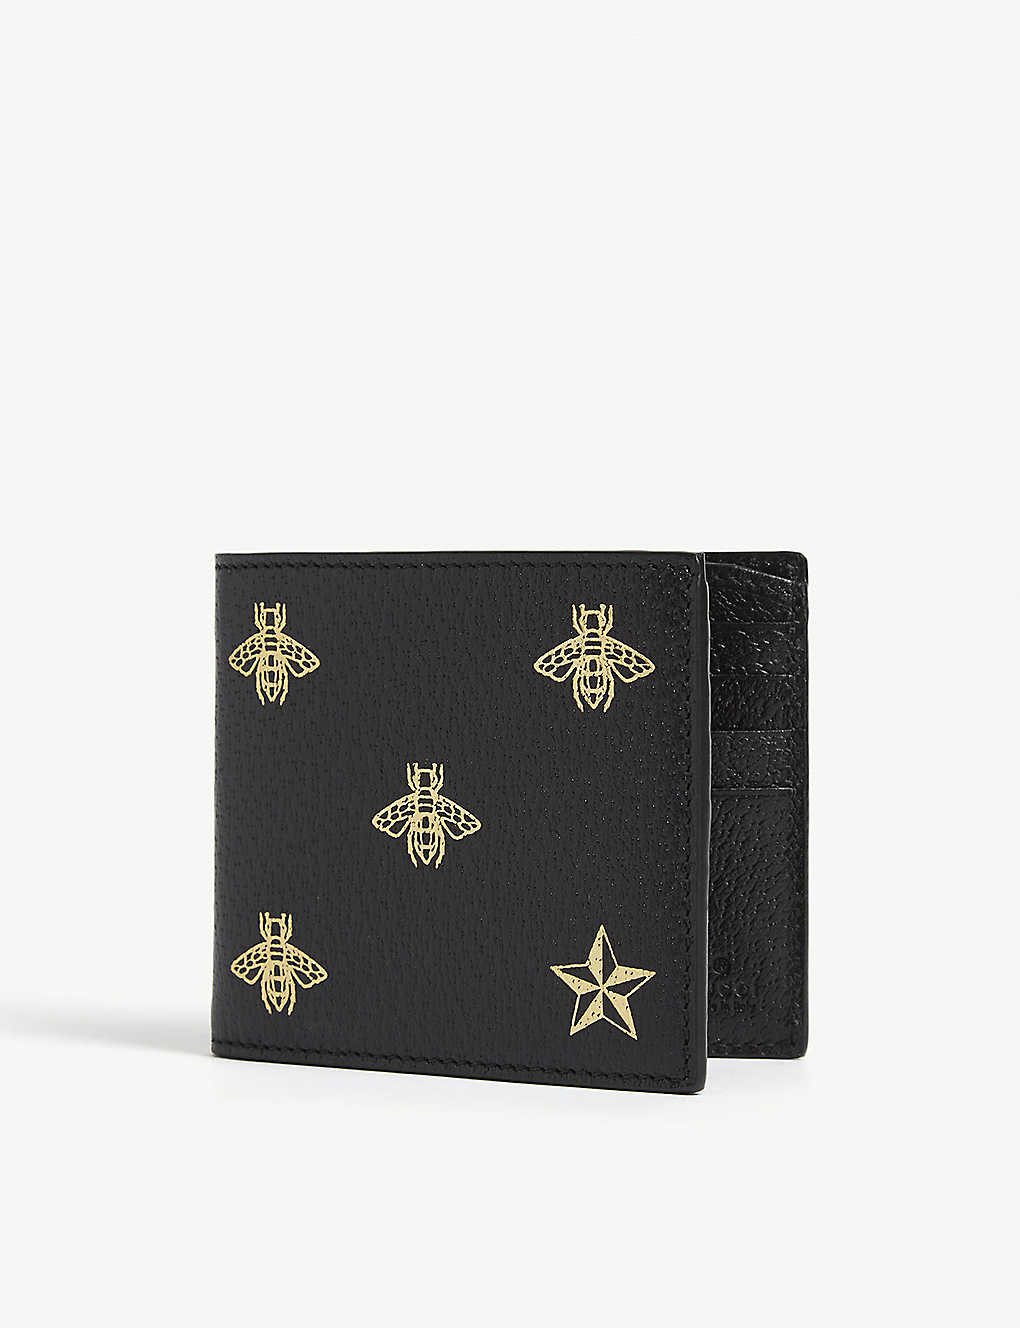 GUCCI: Gold-foil bumblee and star print leather bifold wallet